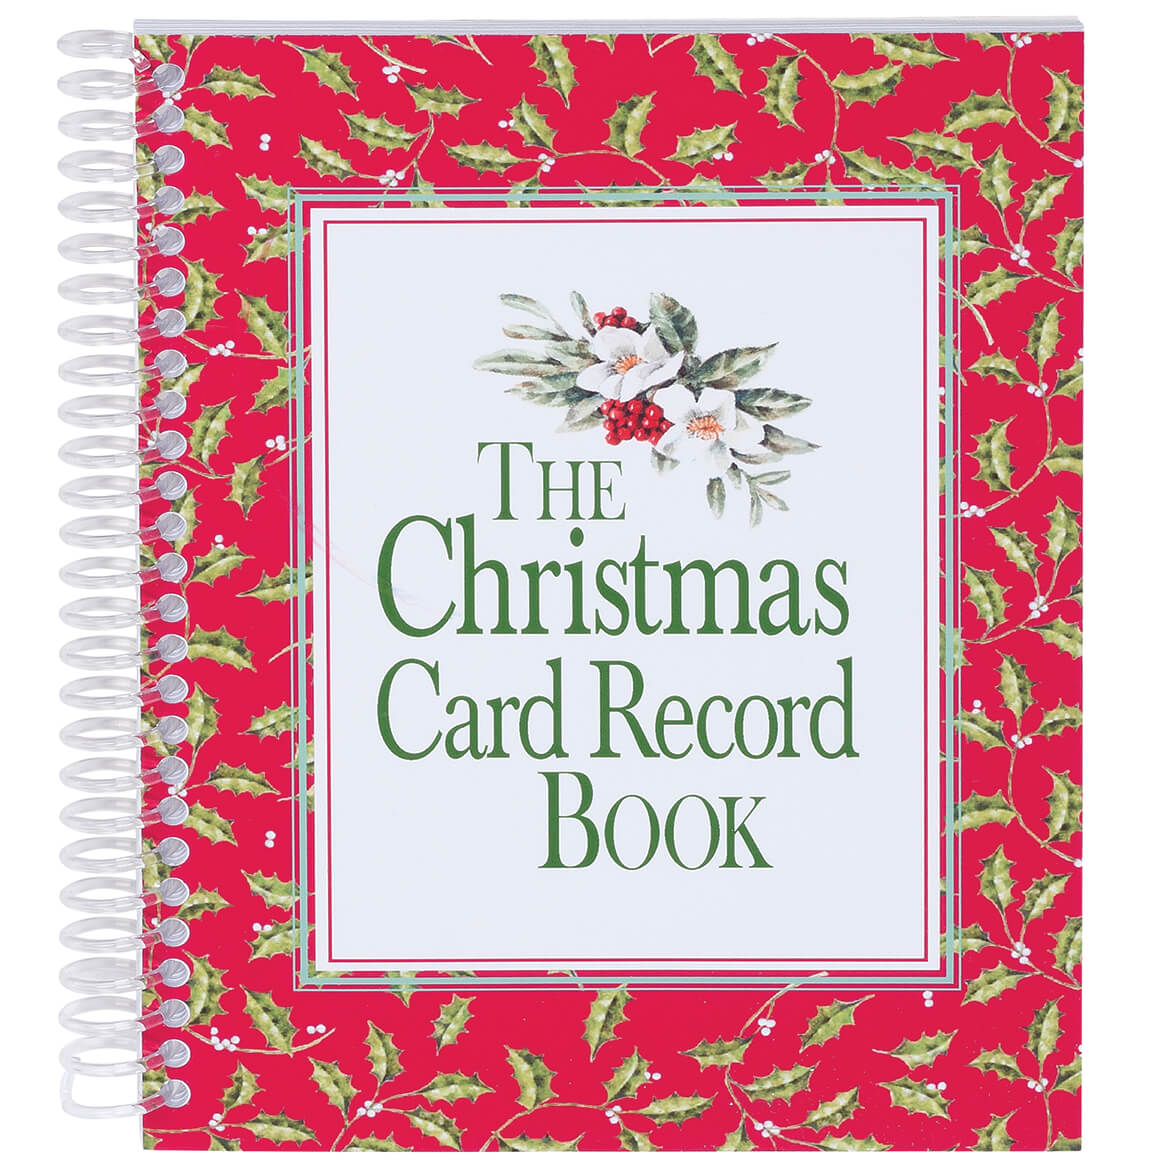 Christmas Card Record Book - Christmas Card Book - Miles Kimball